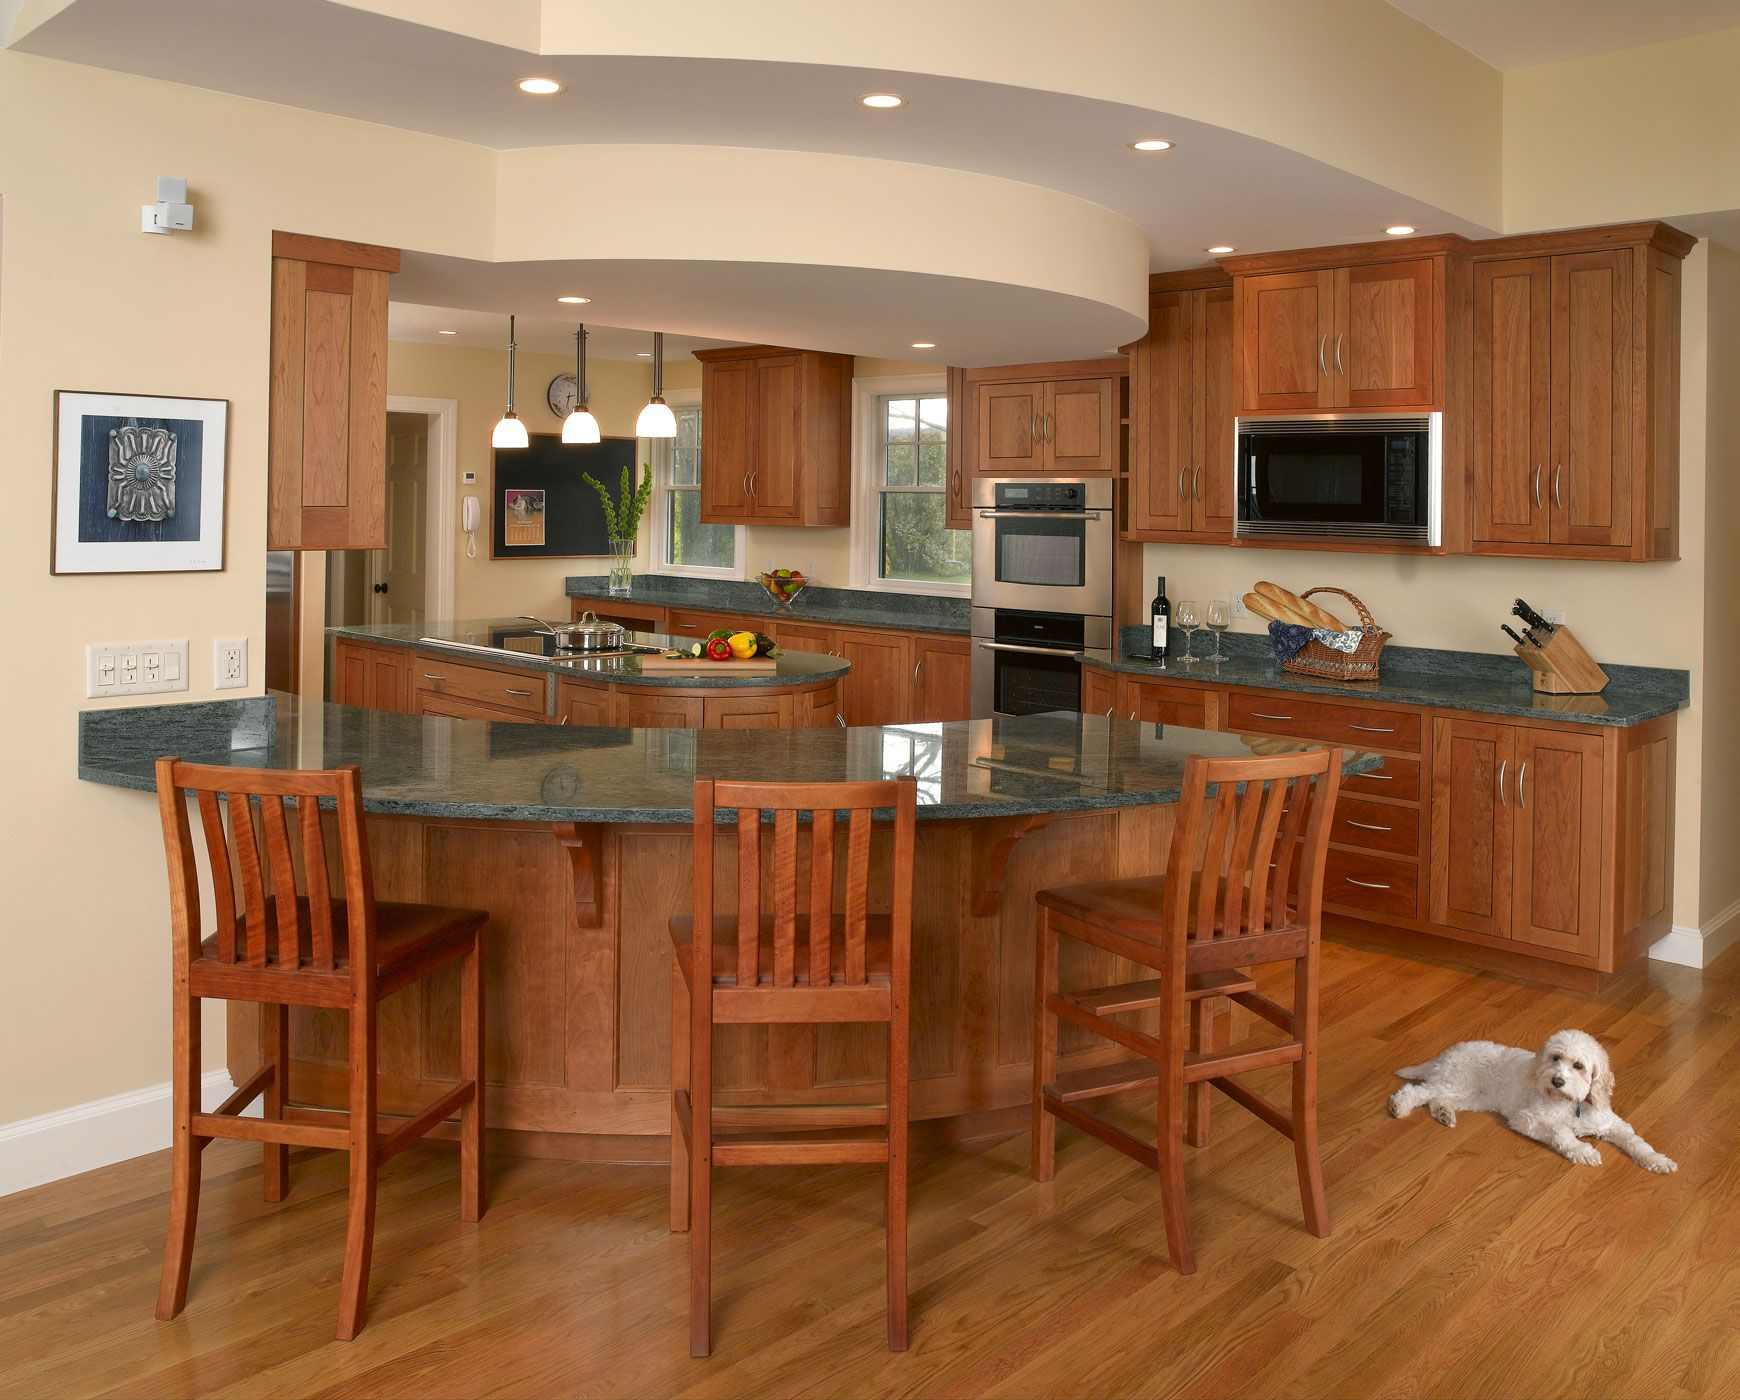 Island For A Small Kitchen Curved Kitchen Islands With Seating 150x150 Dovetail